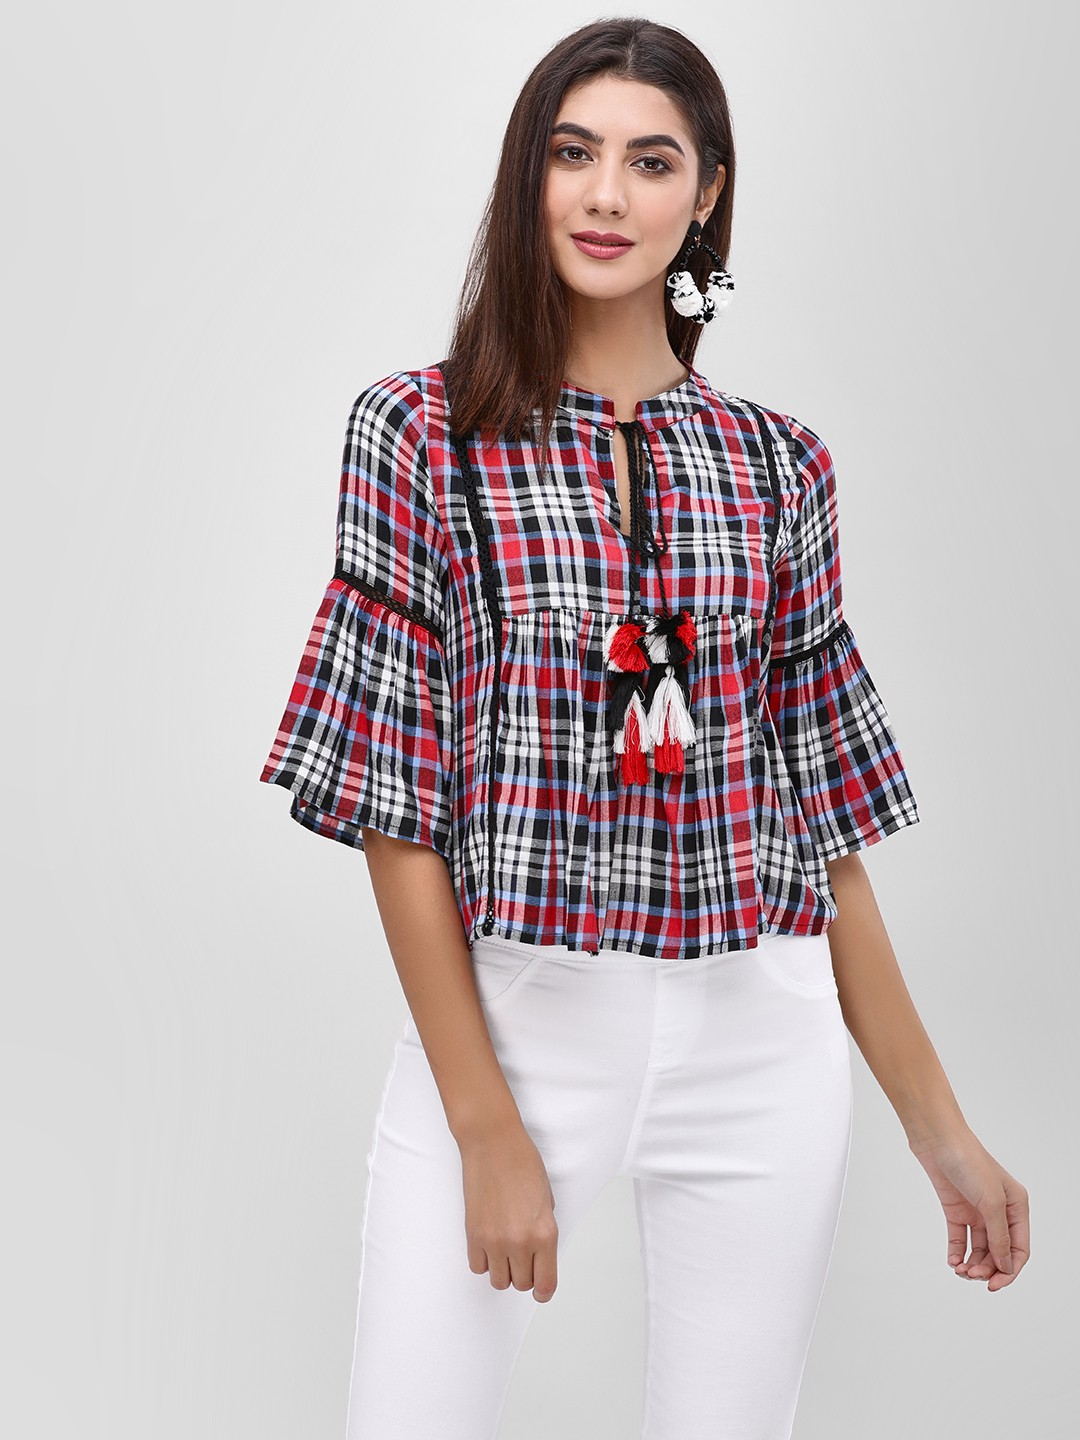 Rena Love Multi Check Blouse With Tie-Fastening 1